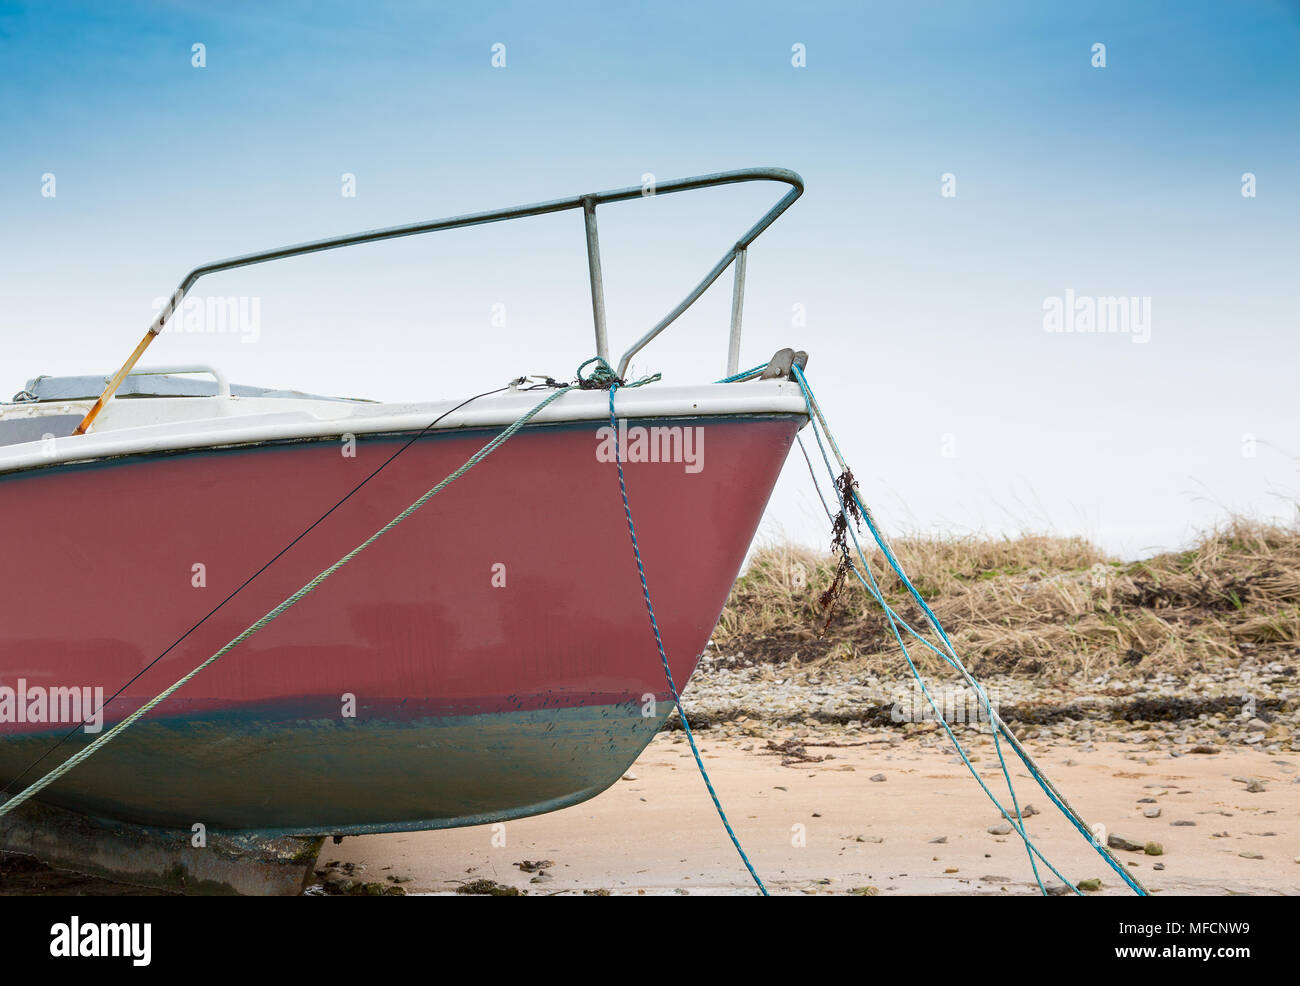 Bow of sail yaght moored at low tide - Stock Image